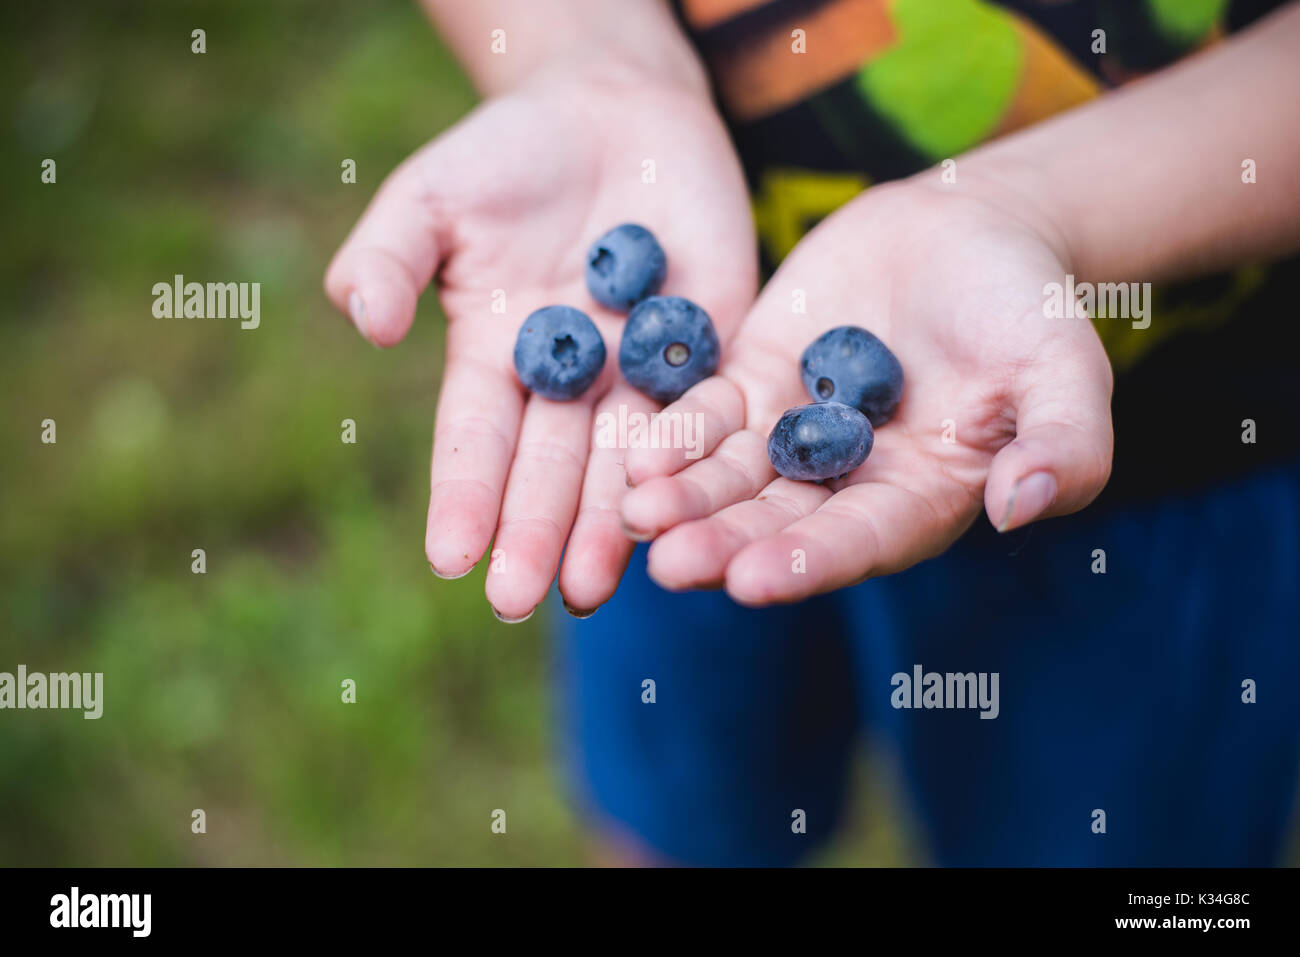 Child hands holding fresh blueberries from a farm. Stock Photo